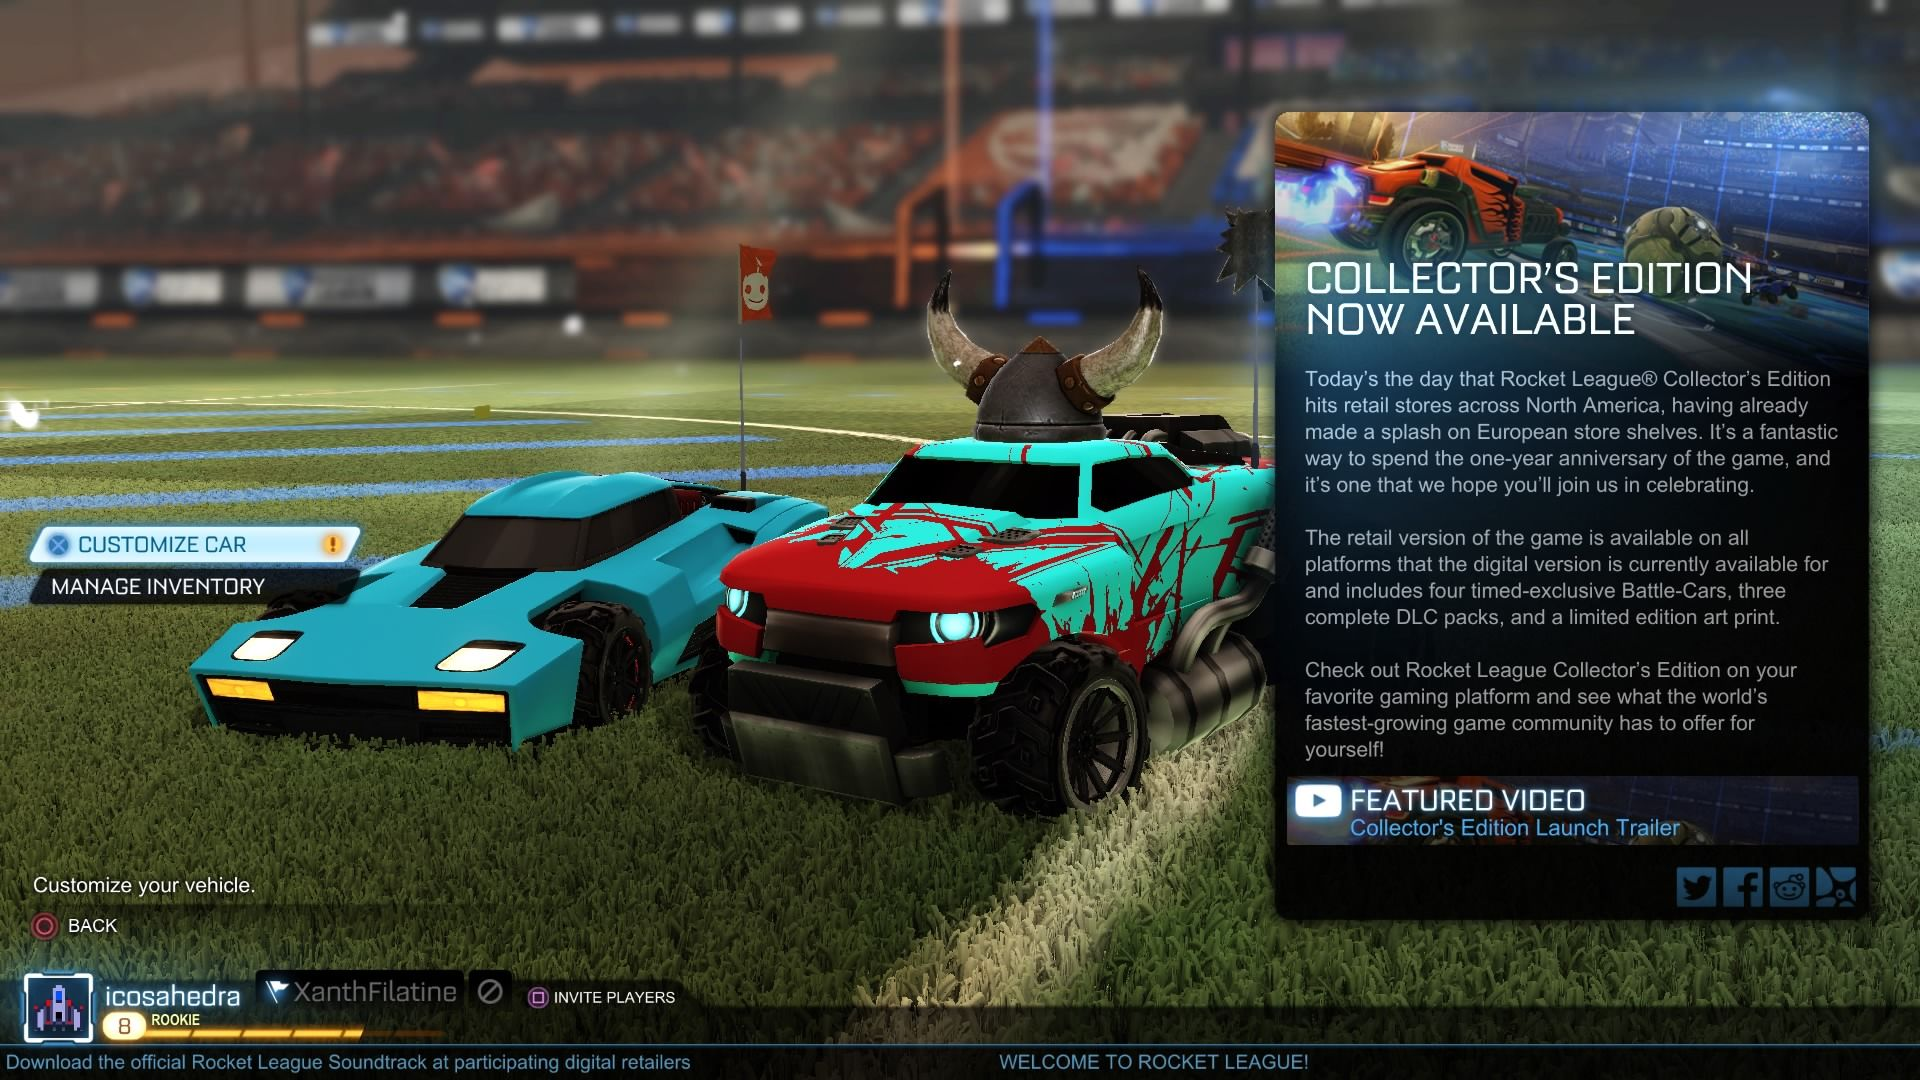 Rocket League Players in the Party are shown on the home